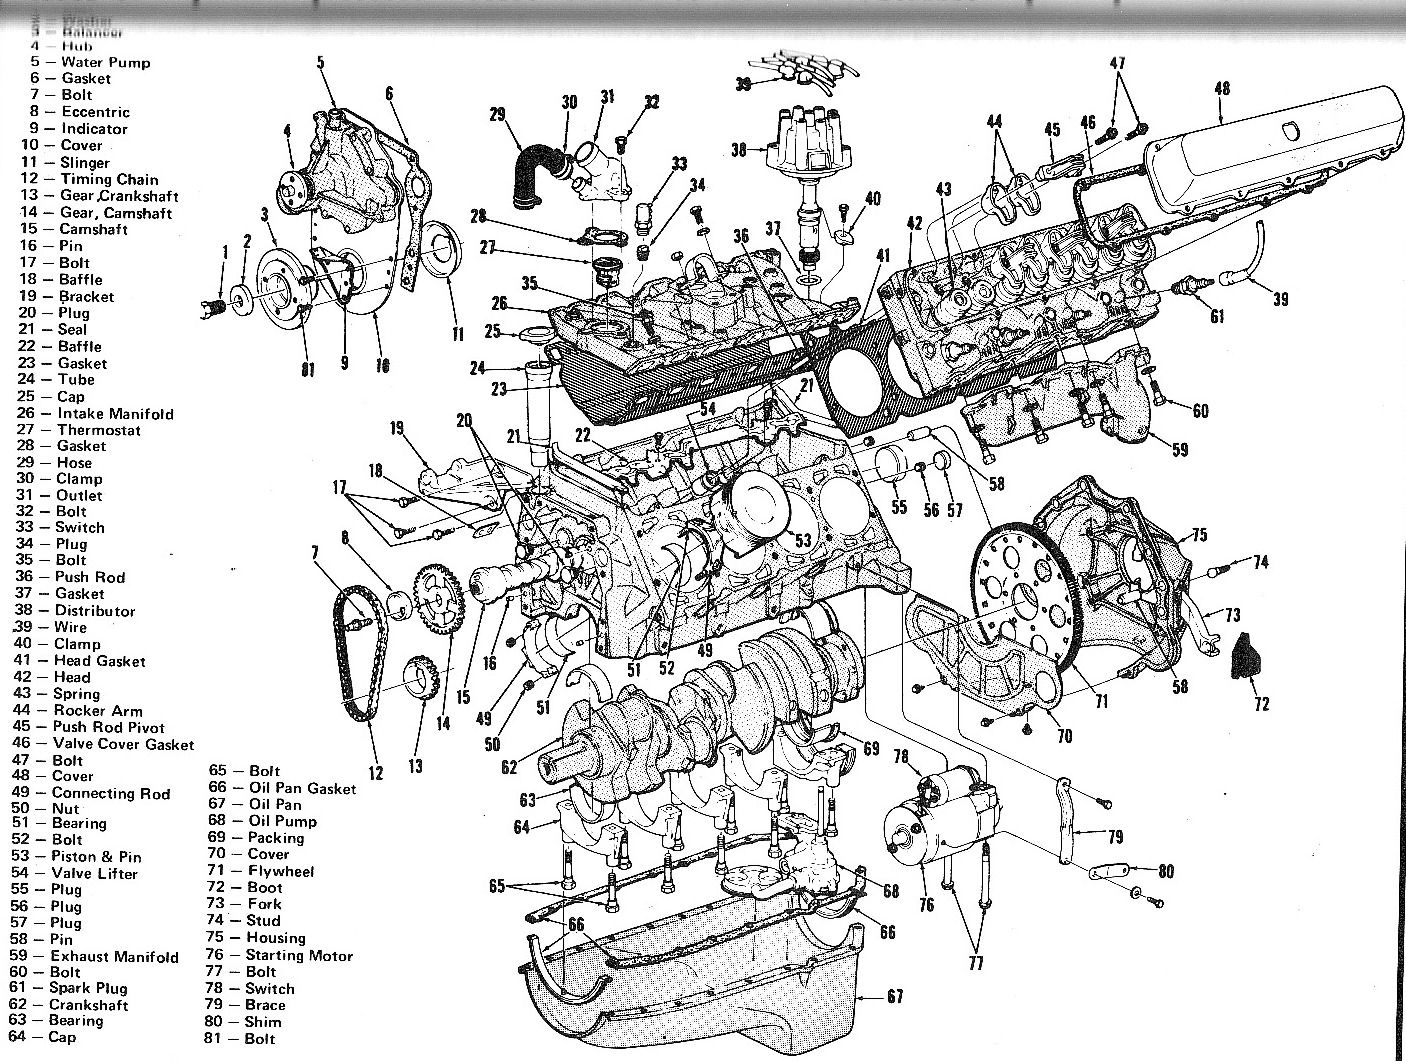 V Engine Diagram Ford F Wiring Diagrams Explorer Saab 9 3 2003 Linear Complete Engines Transmissions D Lay Out 8